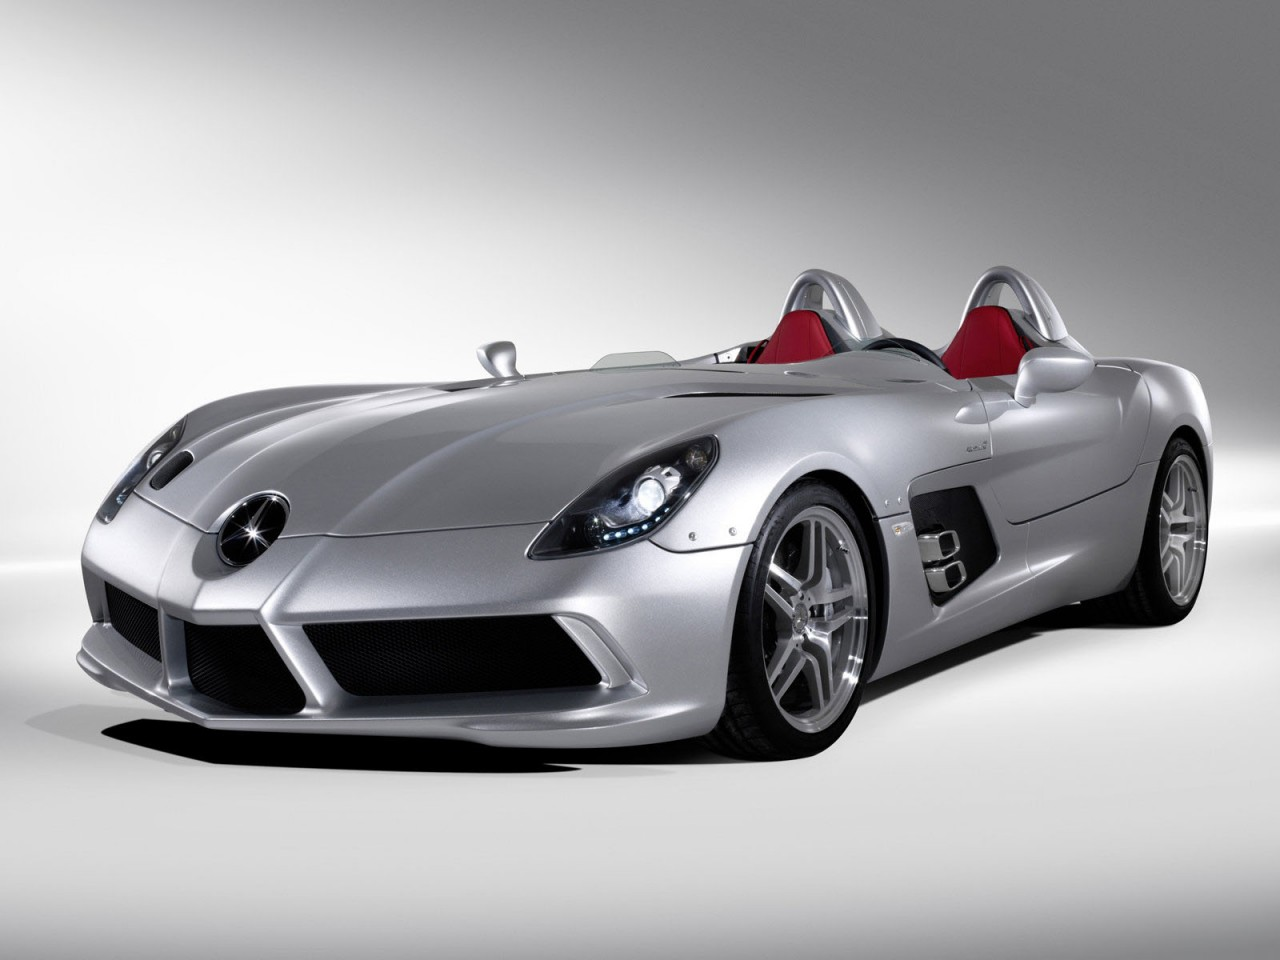 Car wallpaper wallpapers screensavers for Cars of mercedes benz